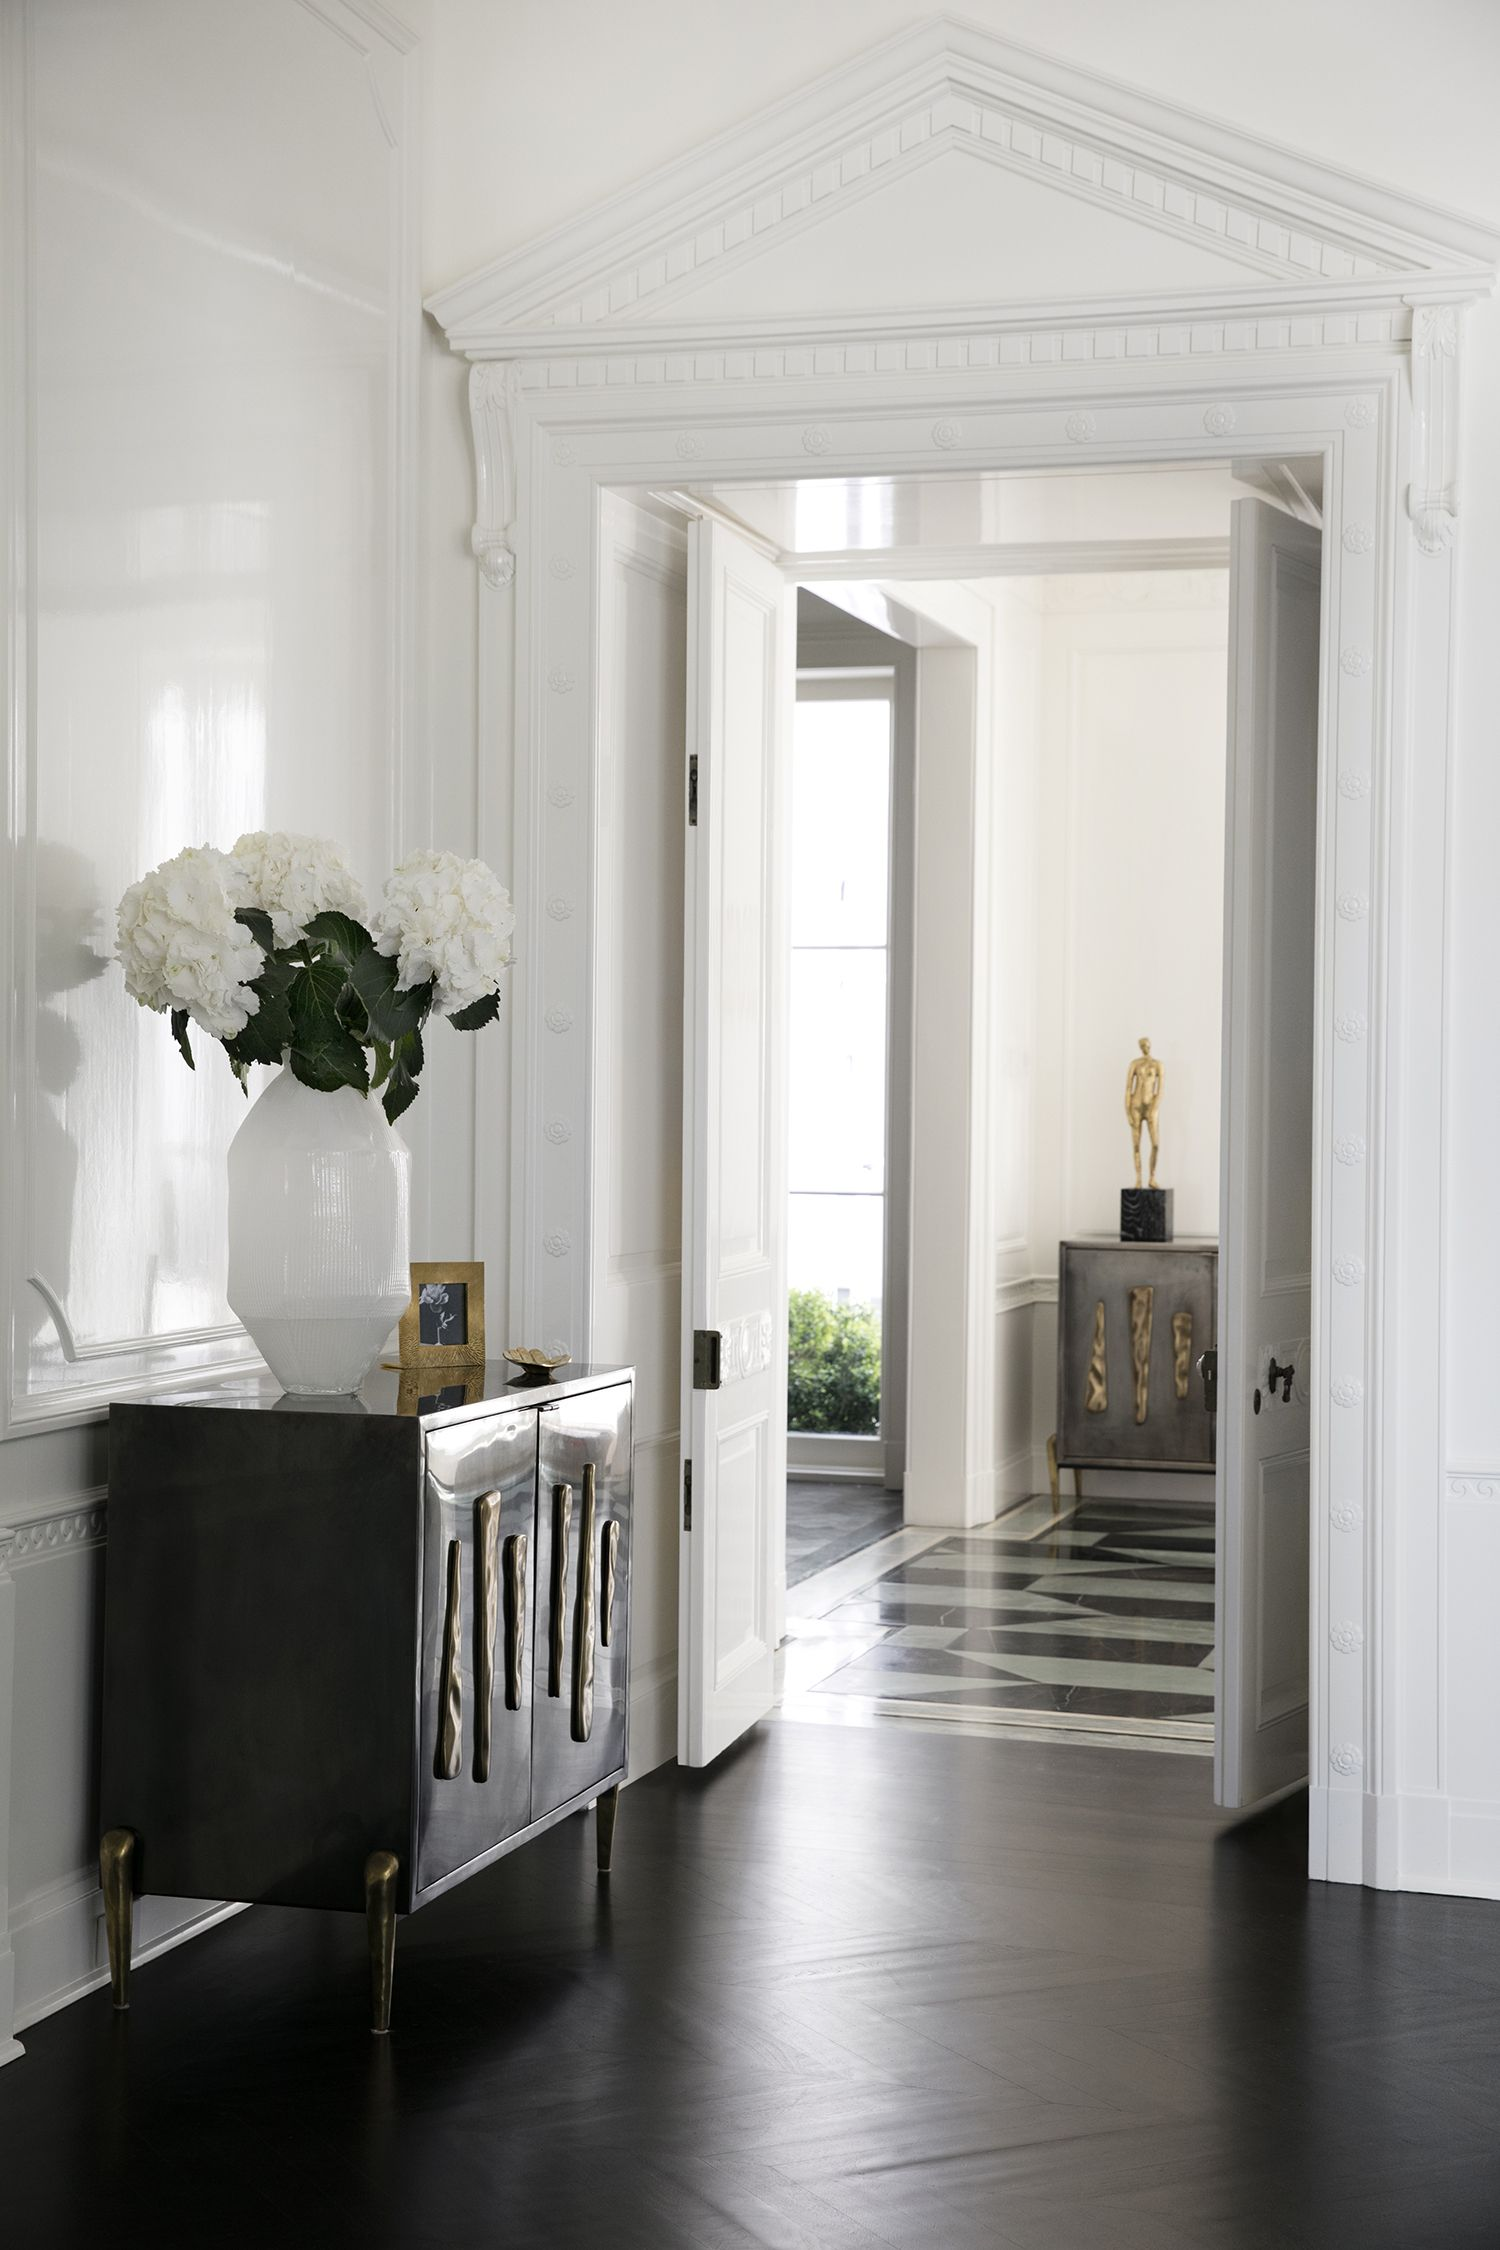 Kelly wearstler liaison cabinet apartment therapy pinterest